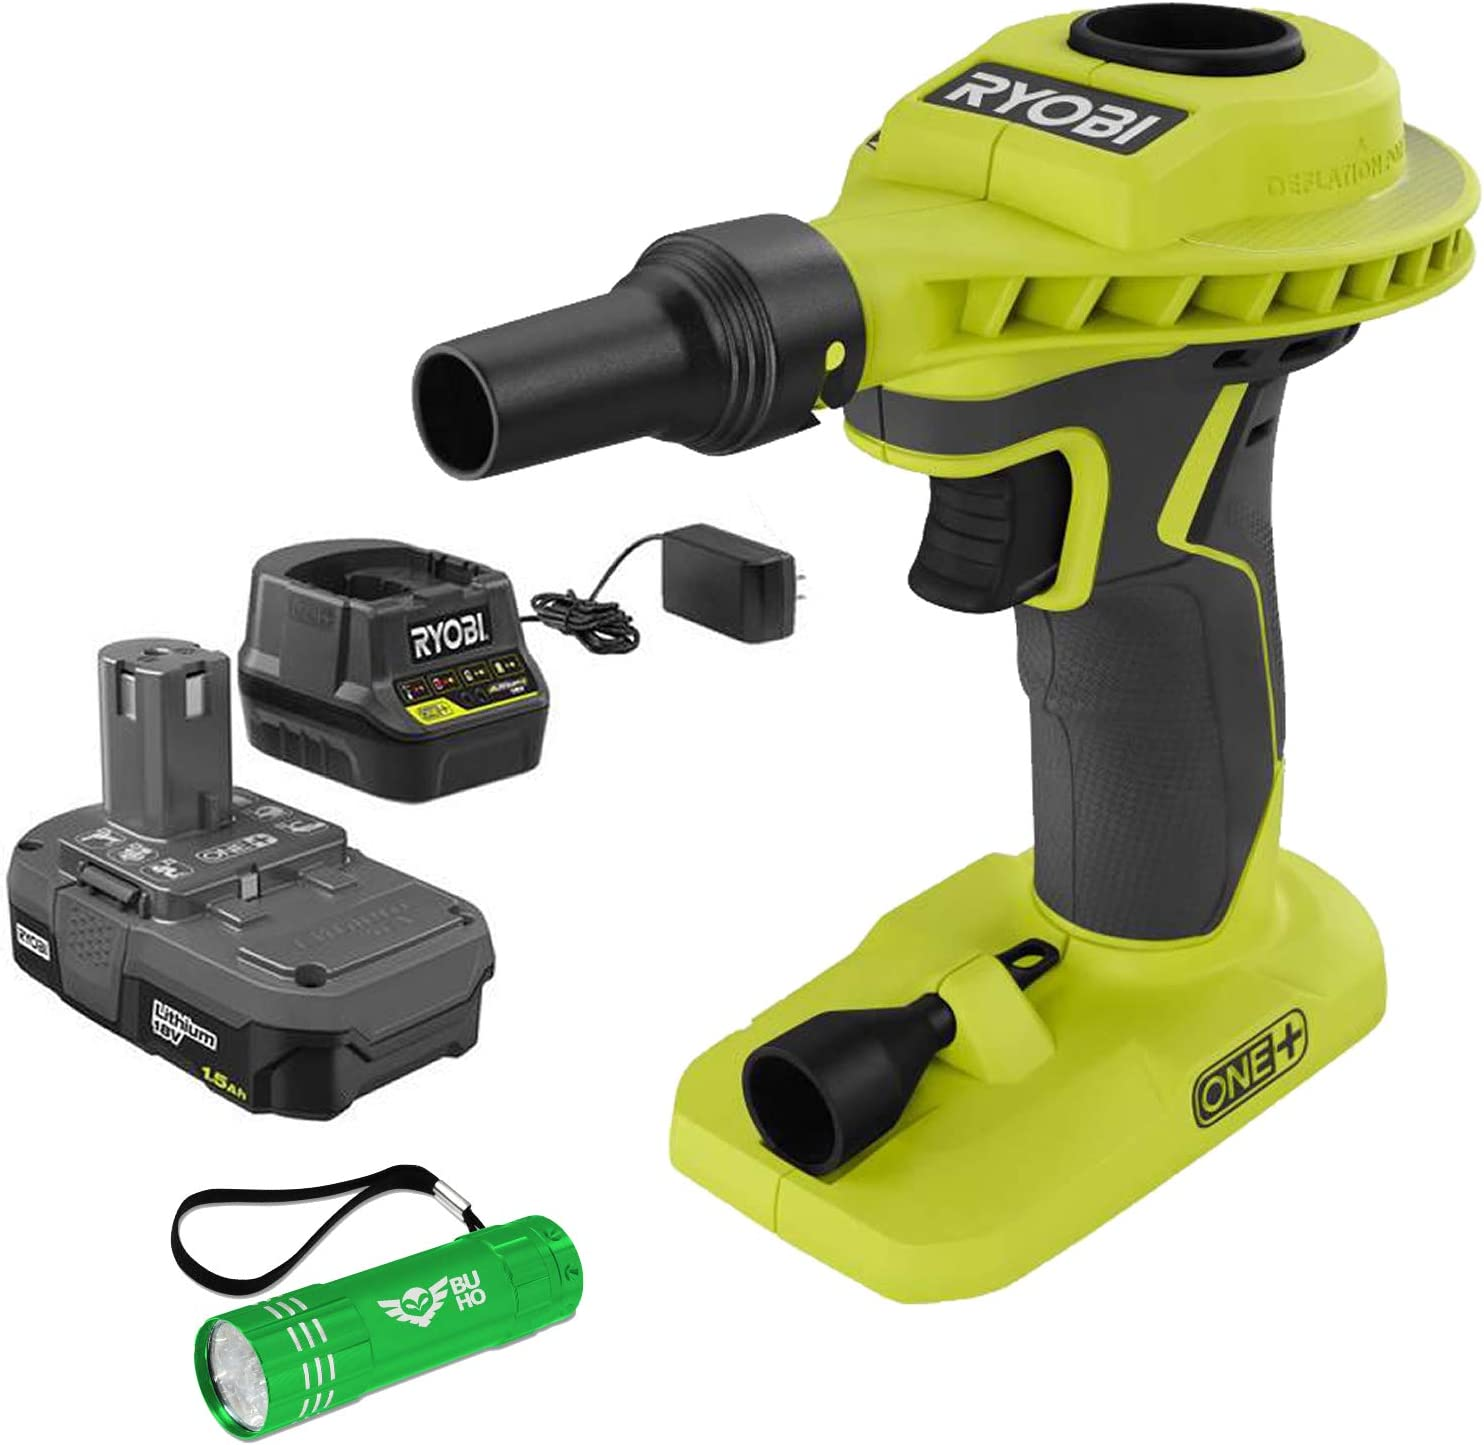 18-Volt Charger and Buho Flashlight 1.3 Ah Battery and 1 1 Ryobi P738 High Volume Air Inlfator Bundle;18-Volt ONE+ Lithium-Ion Cordless Power Inflator with